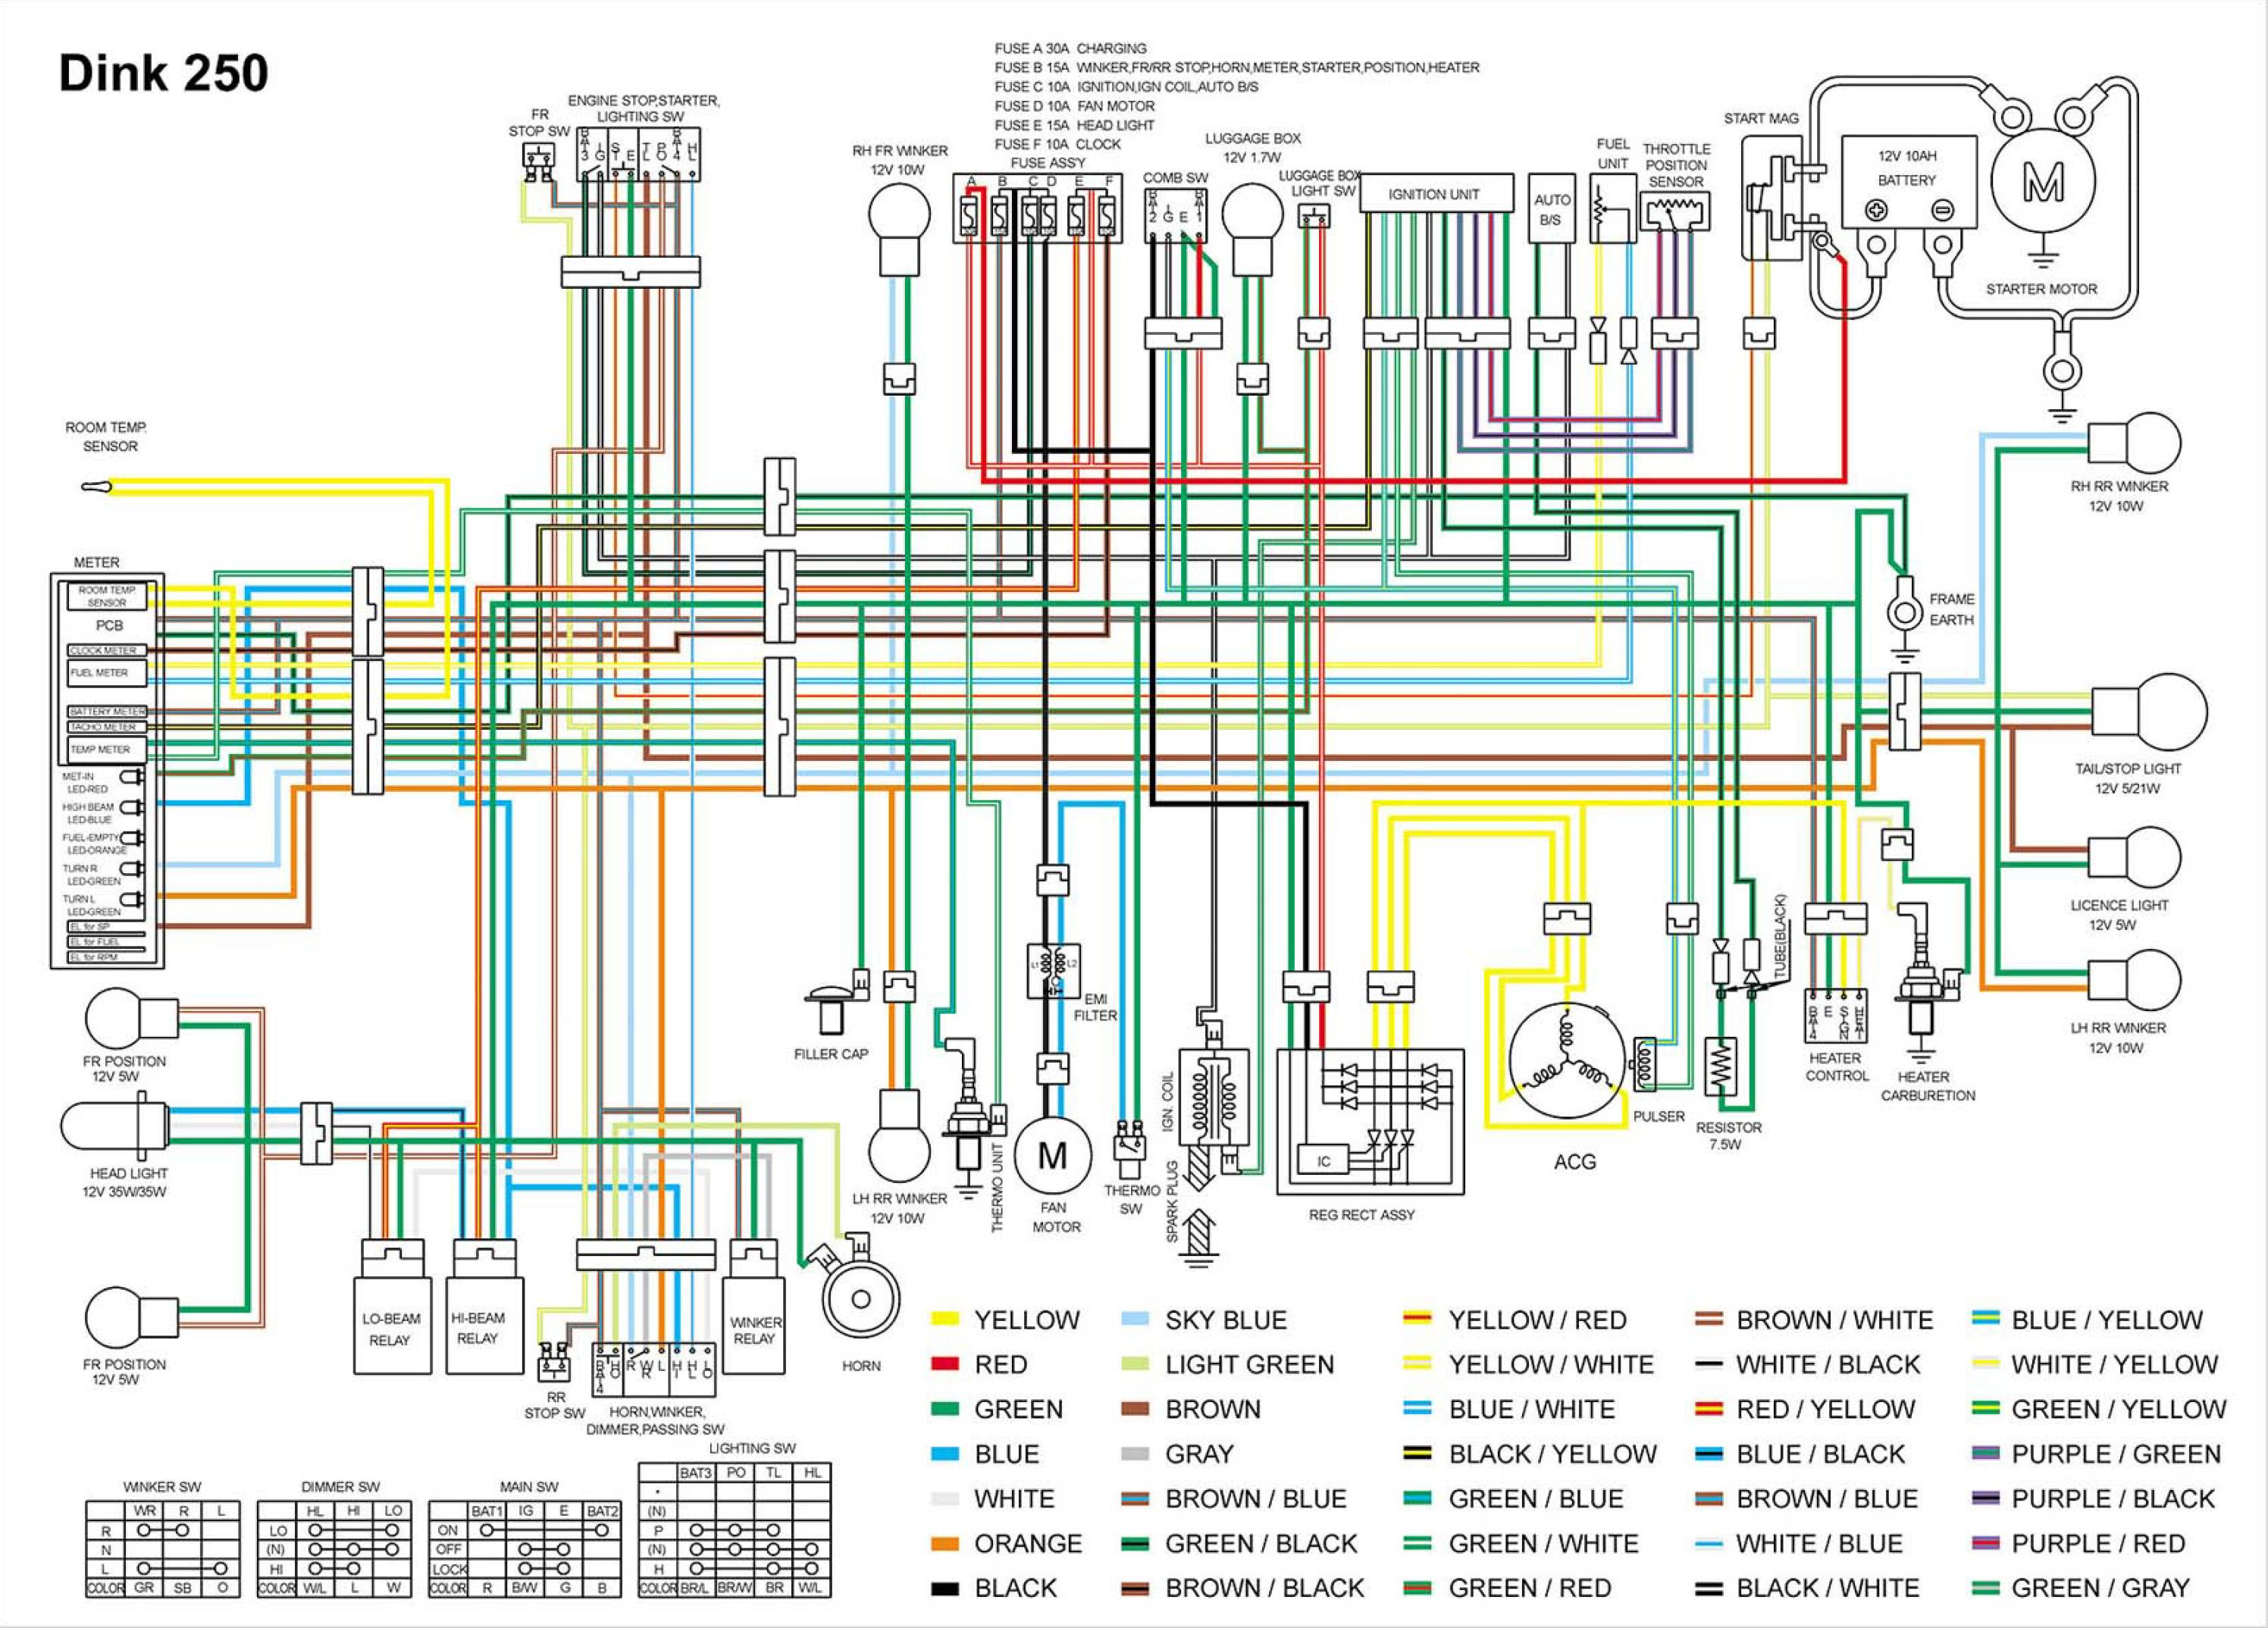 Kymco Wiring Diagram EWD Motorcycle Manuals PDF - Adly scooter wiring diagram